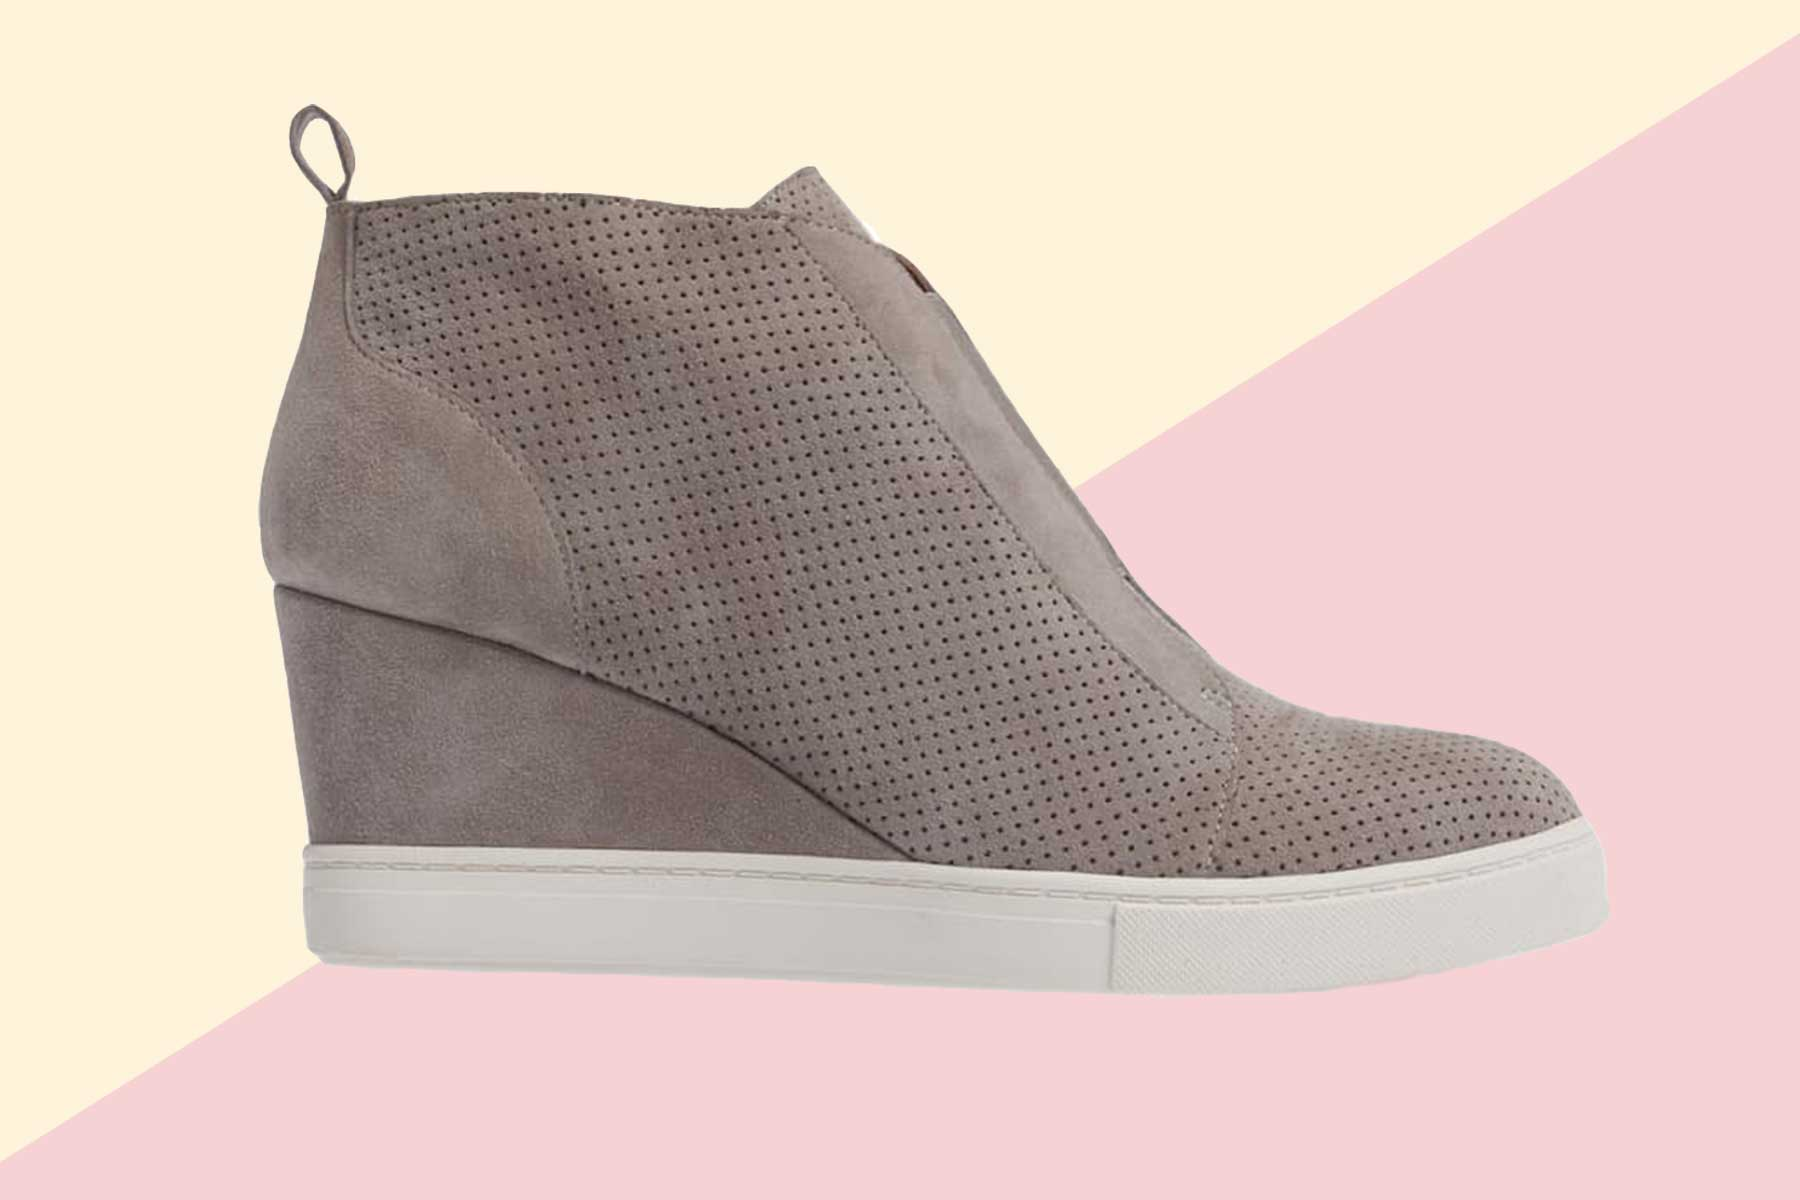 Linea Paolo 'Felicia' Wedge Sneaker in grey